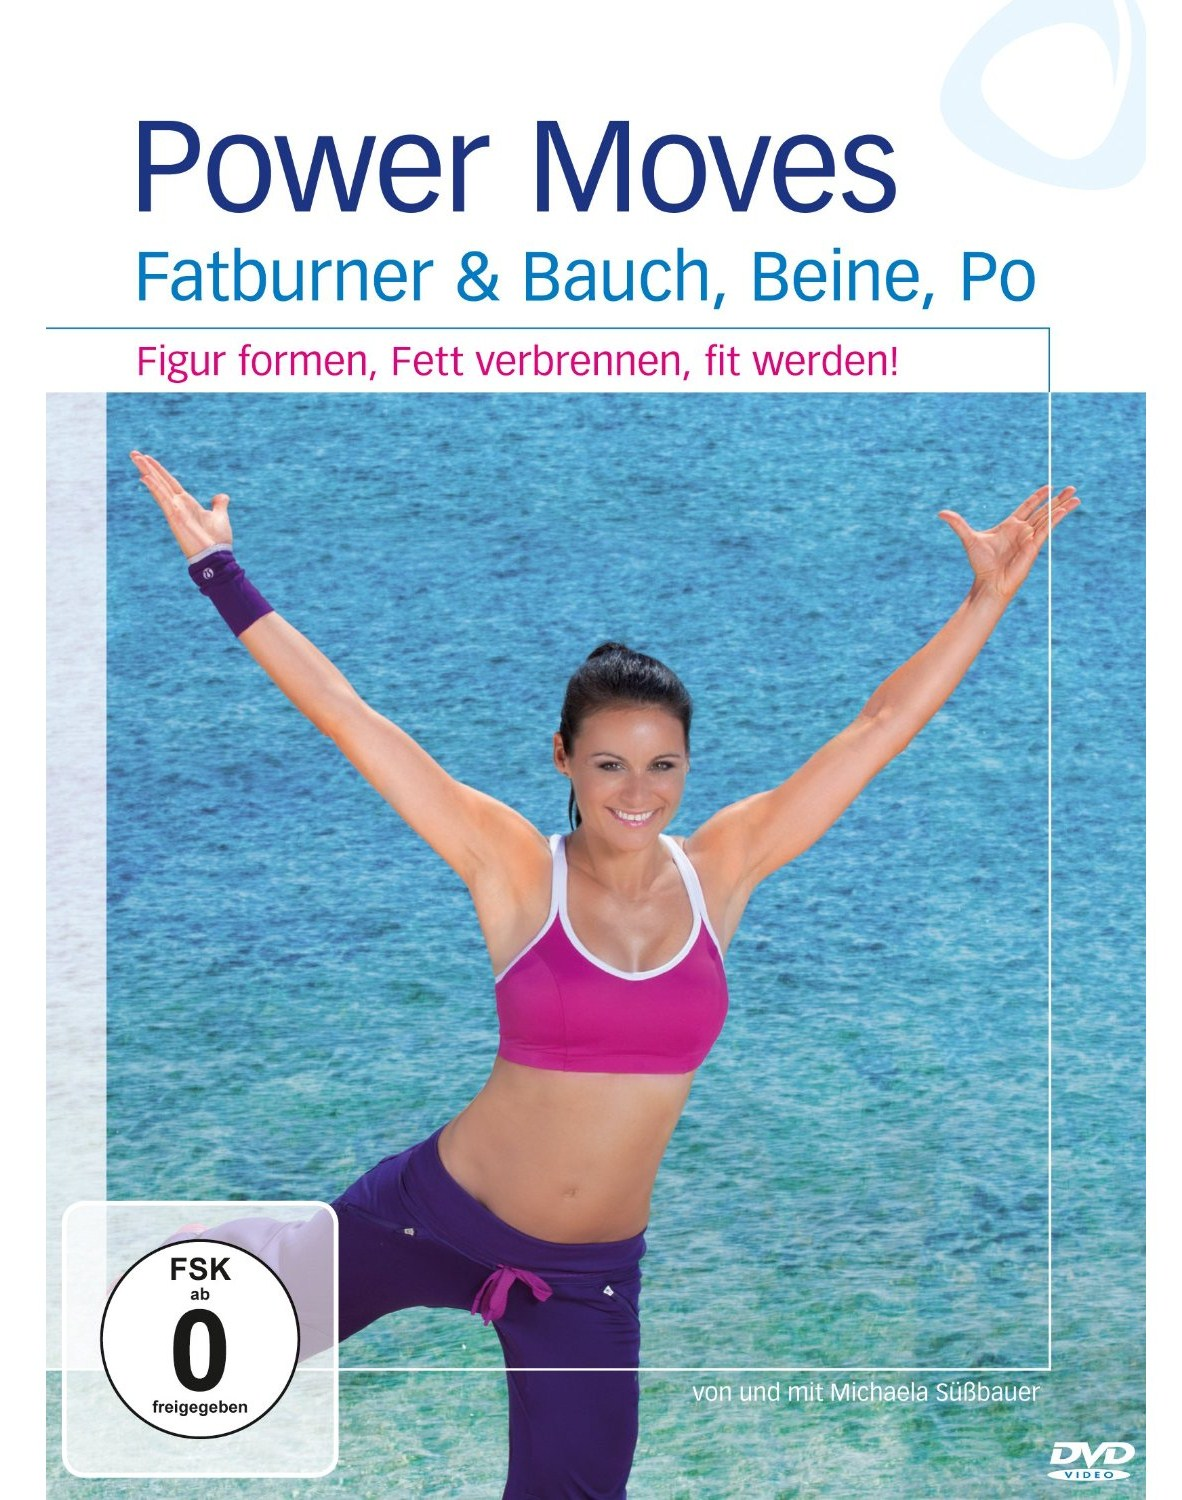 Power Moves - Fatburner & Bauch, Beine, Po